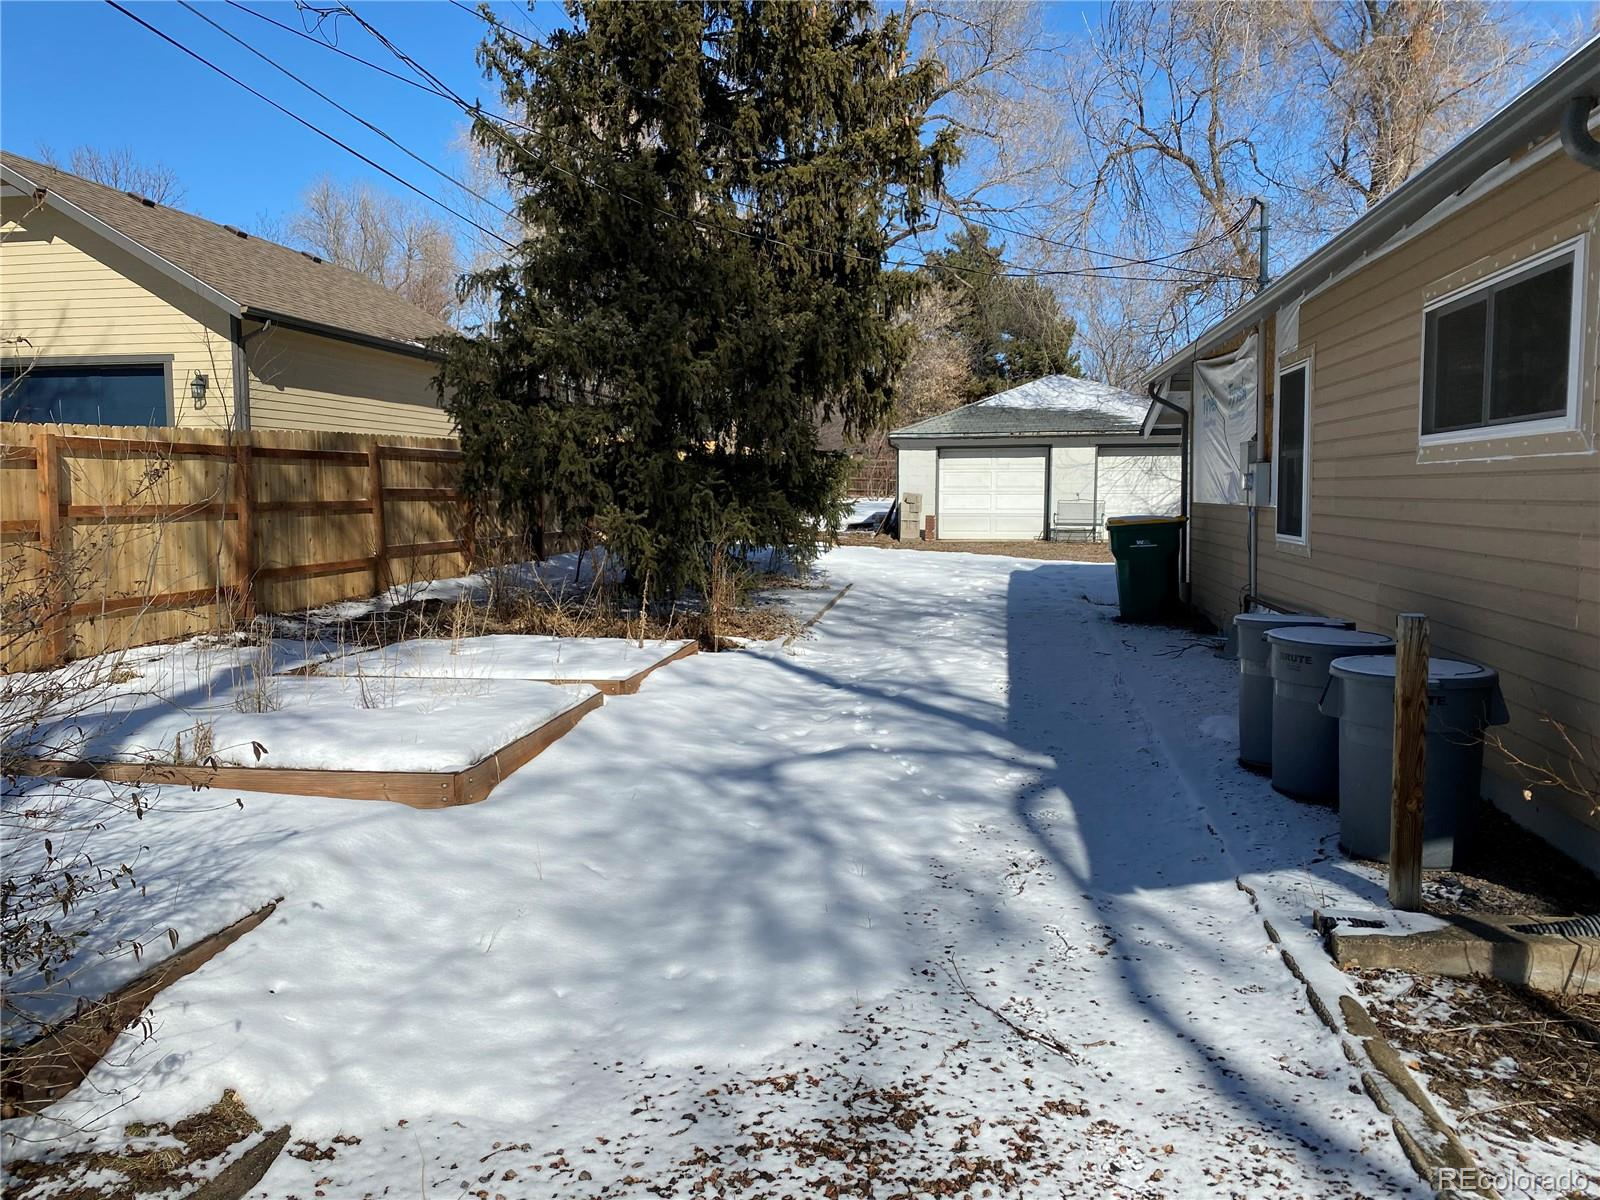 MLS# 5254174 - 3 - 8885 W 64th Place, Arvada, CO 80004